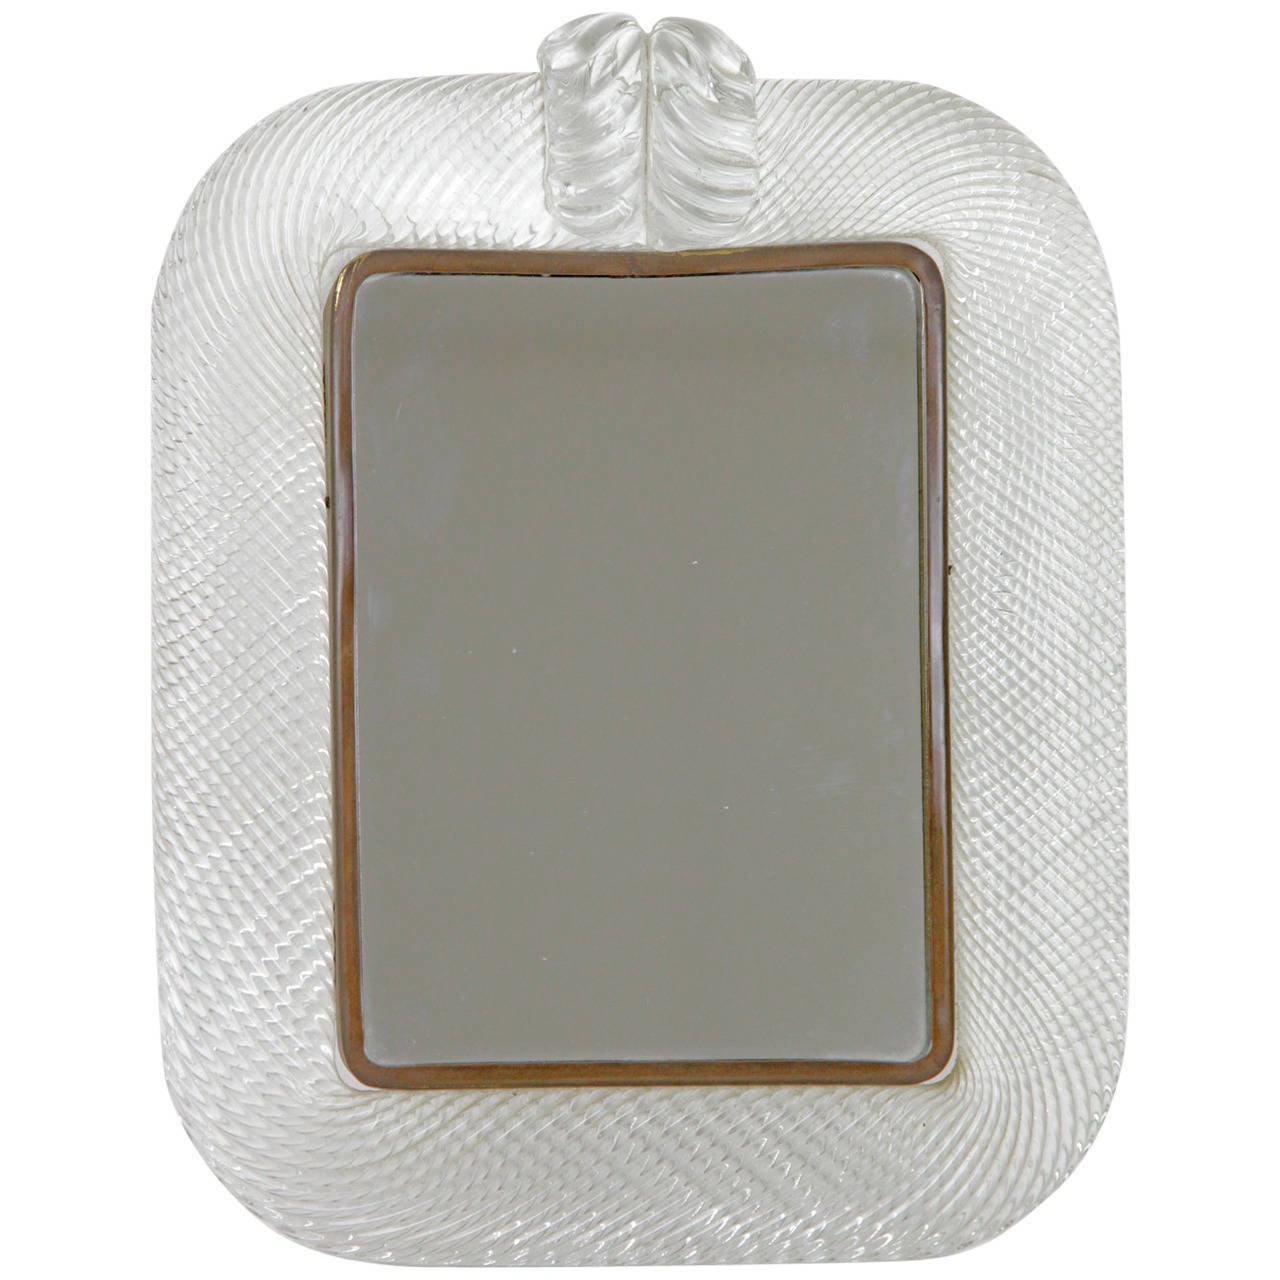 Wonderful small italian wall mirror probably murano glass for Small wall mirrors for sale